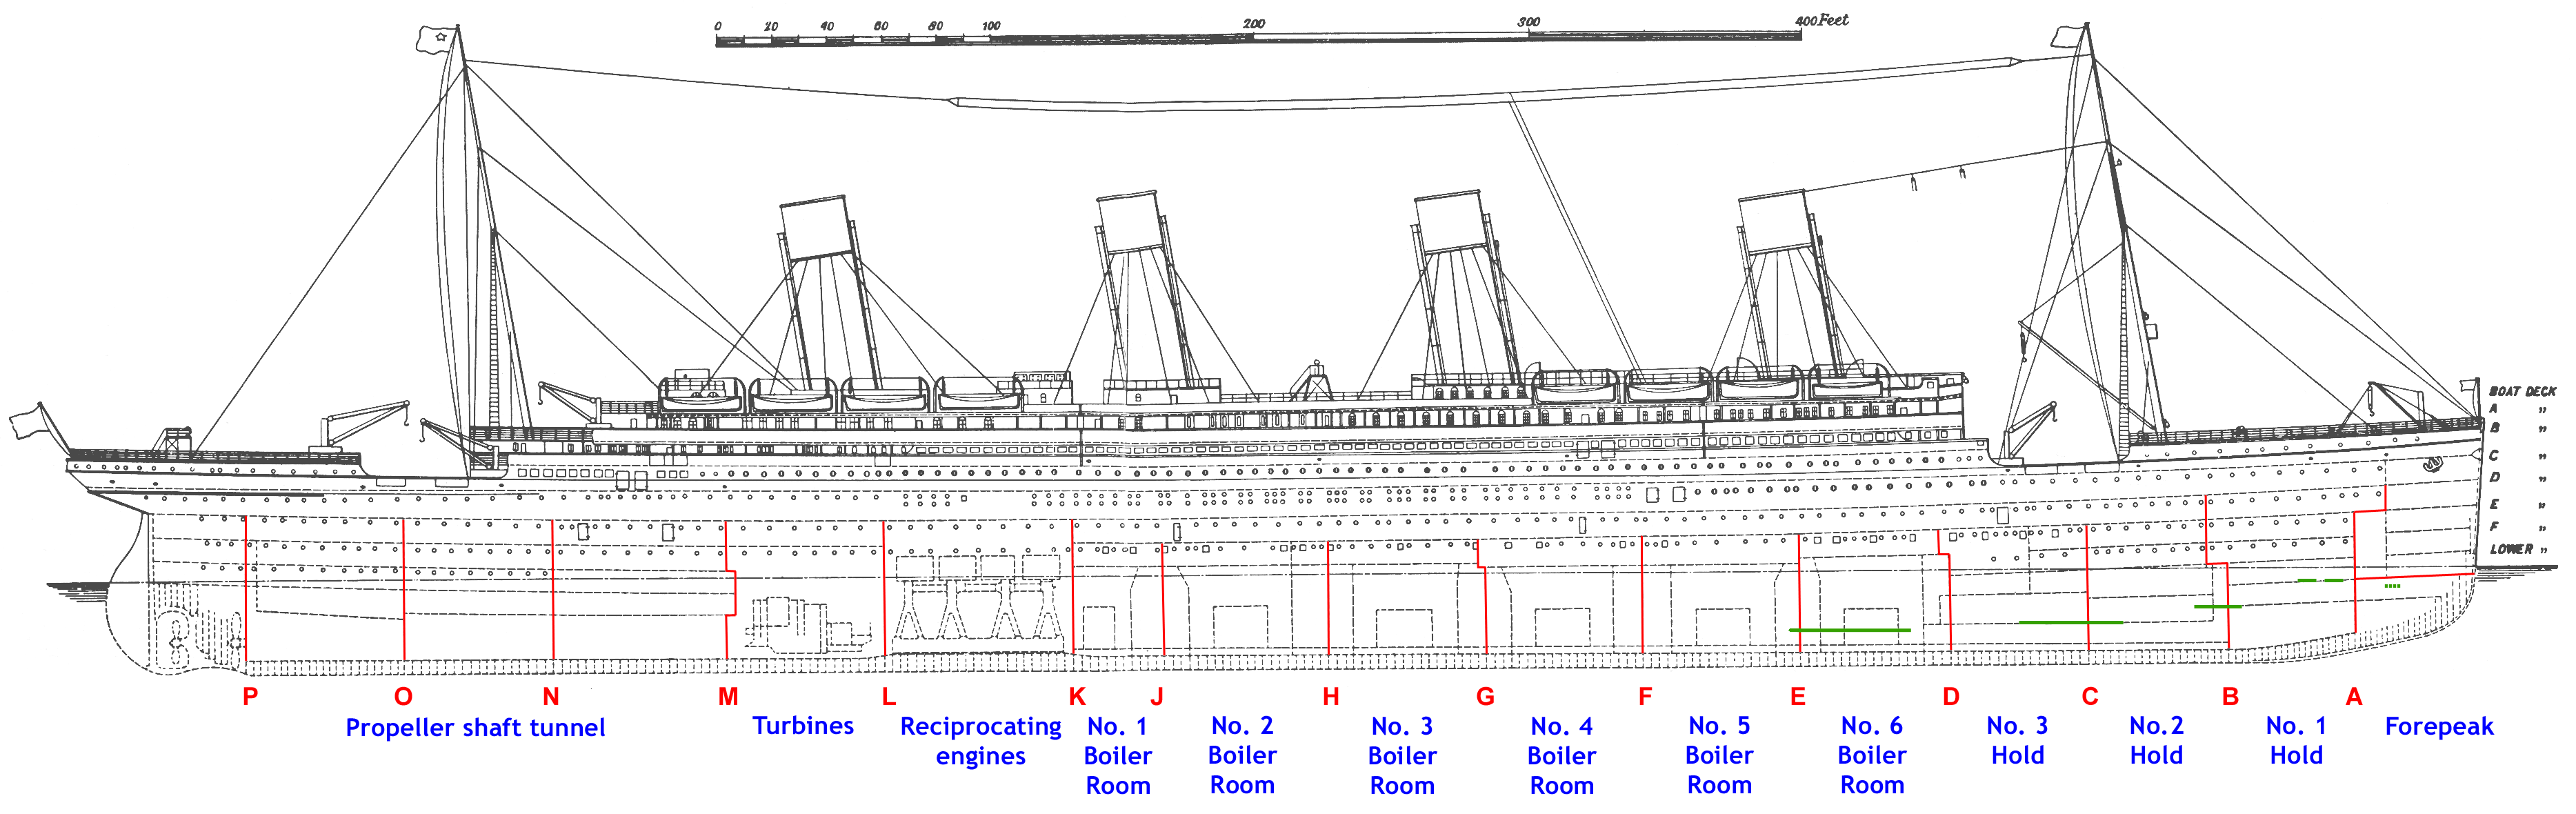 Drawn titanic front Wide tiny slits RMS adult's